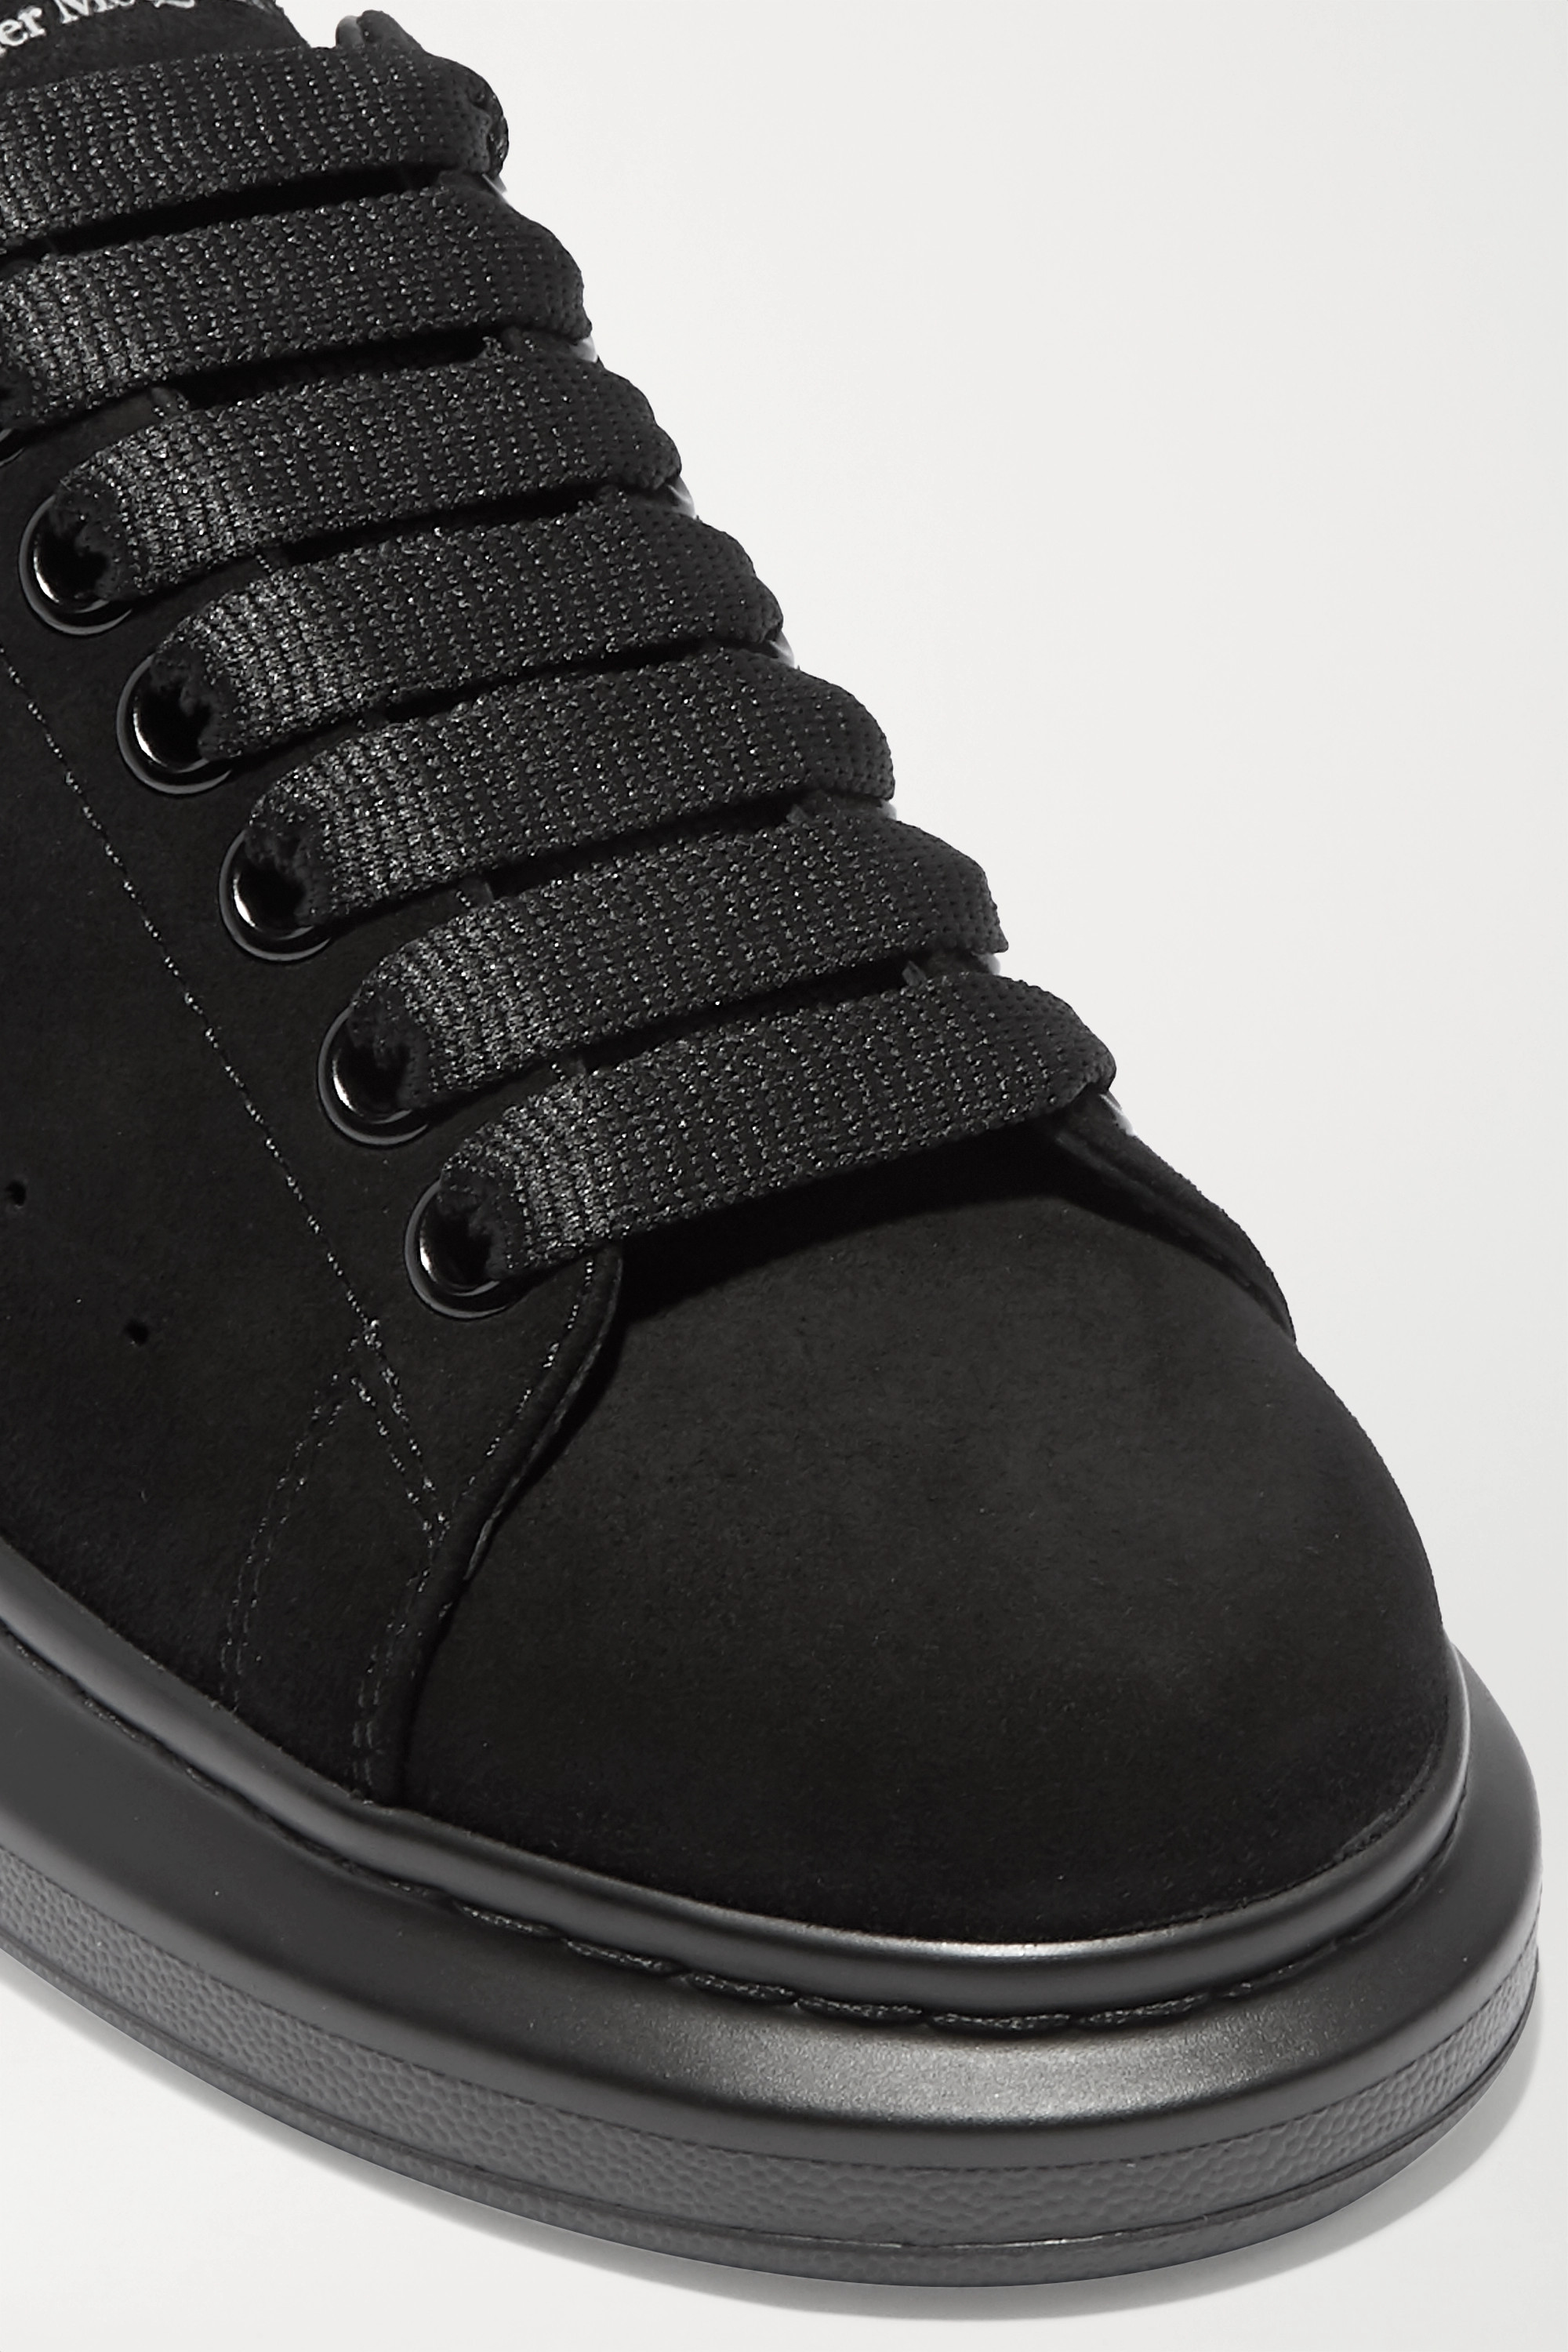 Alexander McQueen Suede exaggerated-sole sneakers